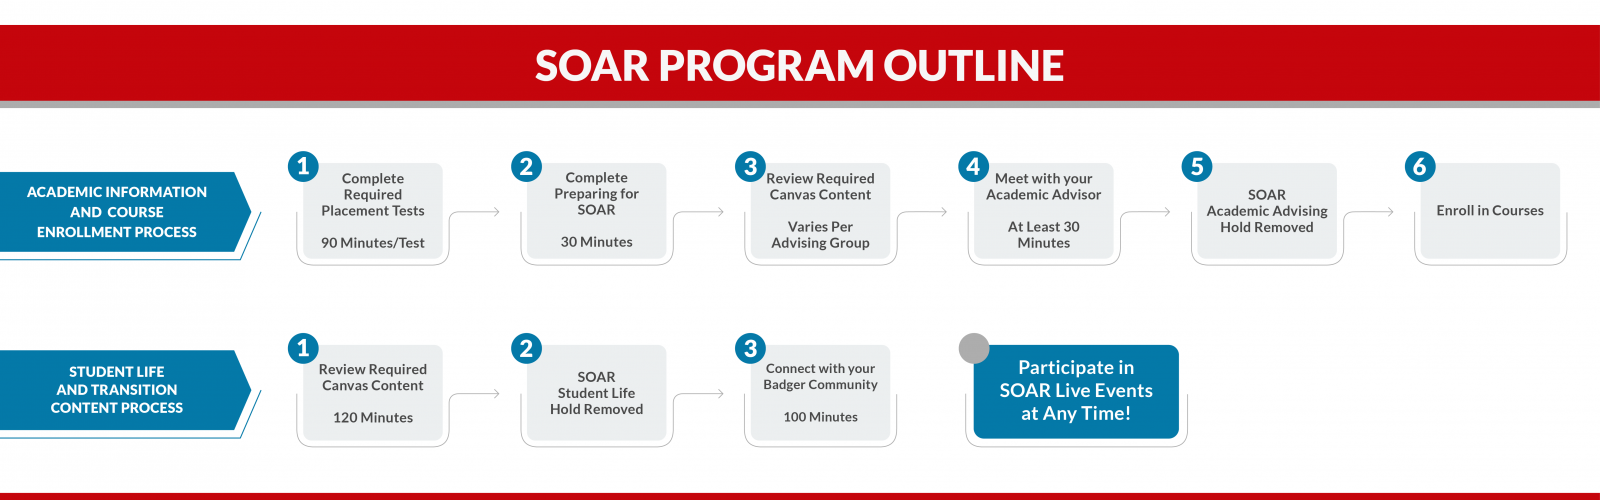 A visual of the student SOAR process that is described in the text below